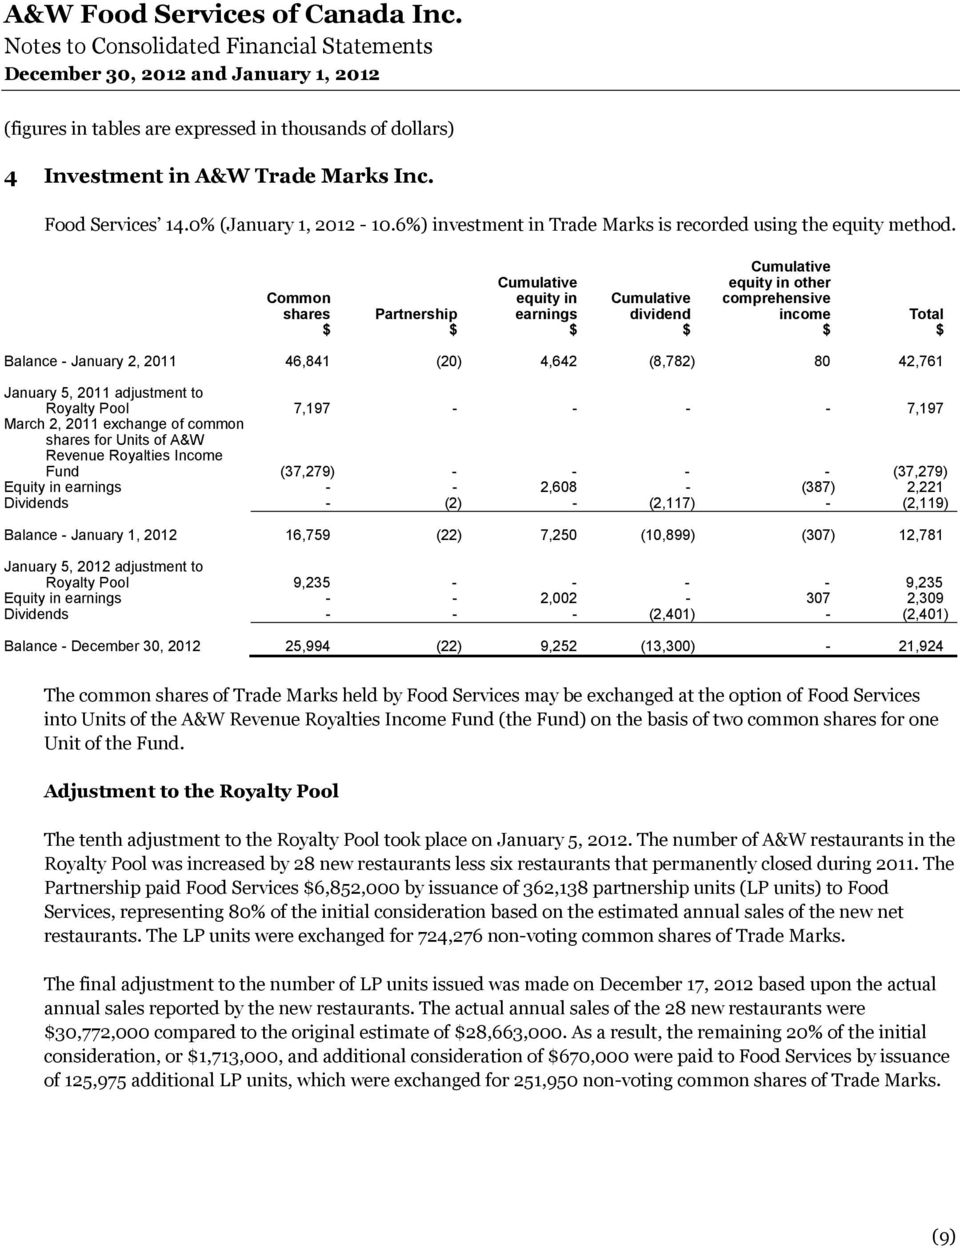 5, 2011 adjustment to Royalty Pool 7,197 - - - - 7,197 March 2, 2011 exchange of common shares for Units of A&W Revenue Royalties Income Fund (37,279) - - - - (37,279) Equity in earnings - - 2,608 -